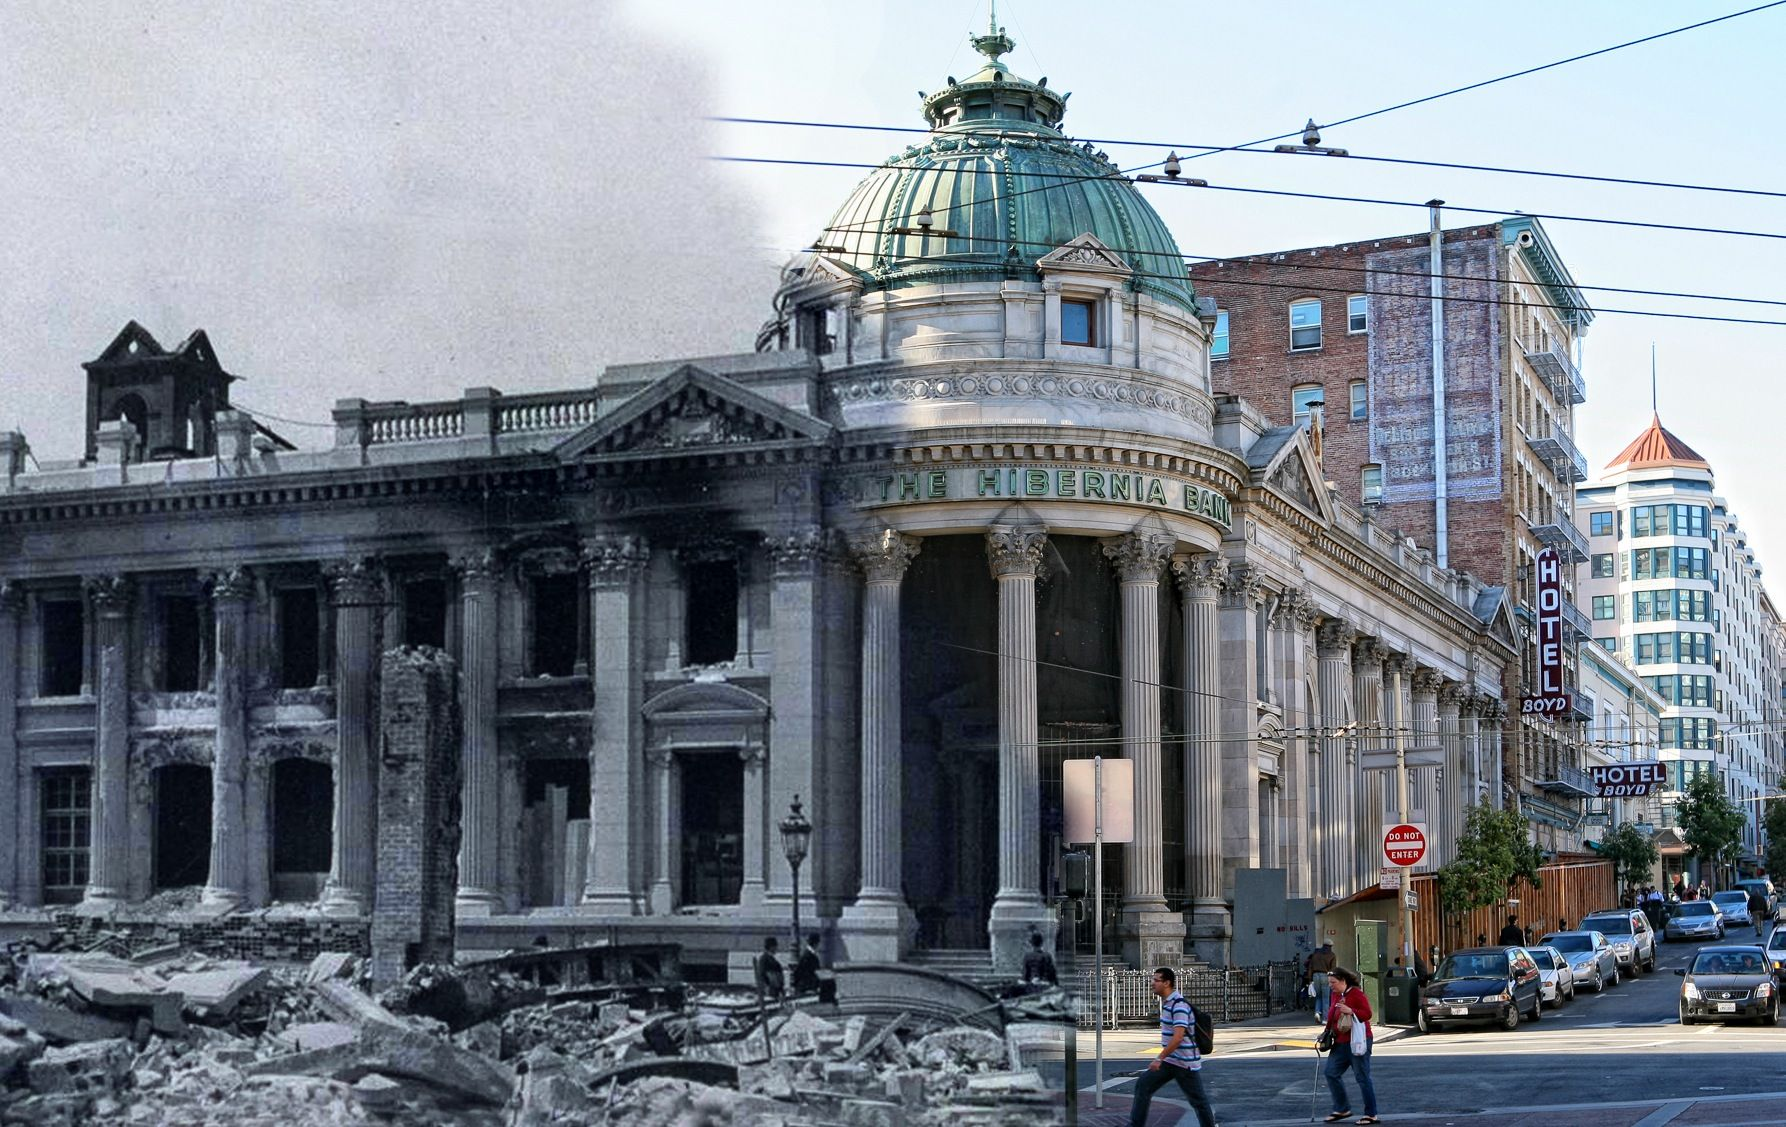 San Francisco Earthquake Photos Blended Into Present Day. Pedestrians cross Jones St towards a pile of rubble on Market Street. The Hibernia Bank building is burned out, but still standing strong.